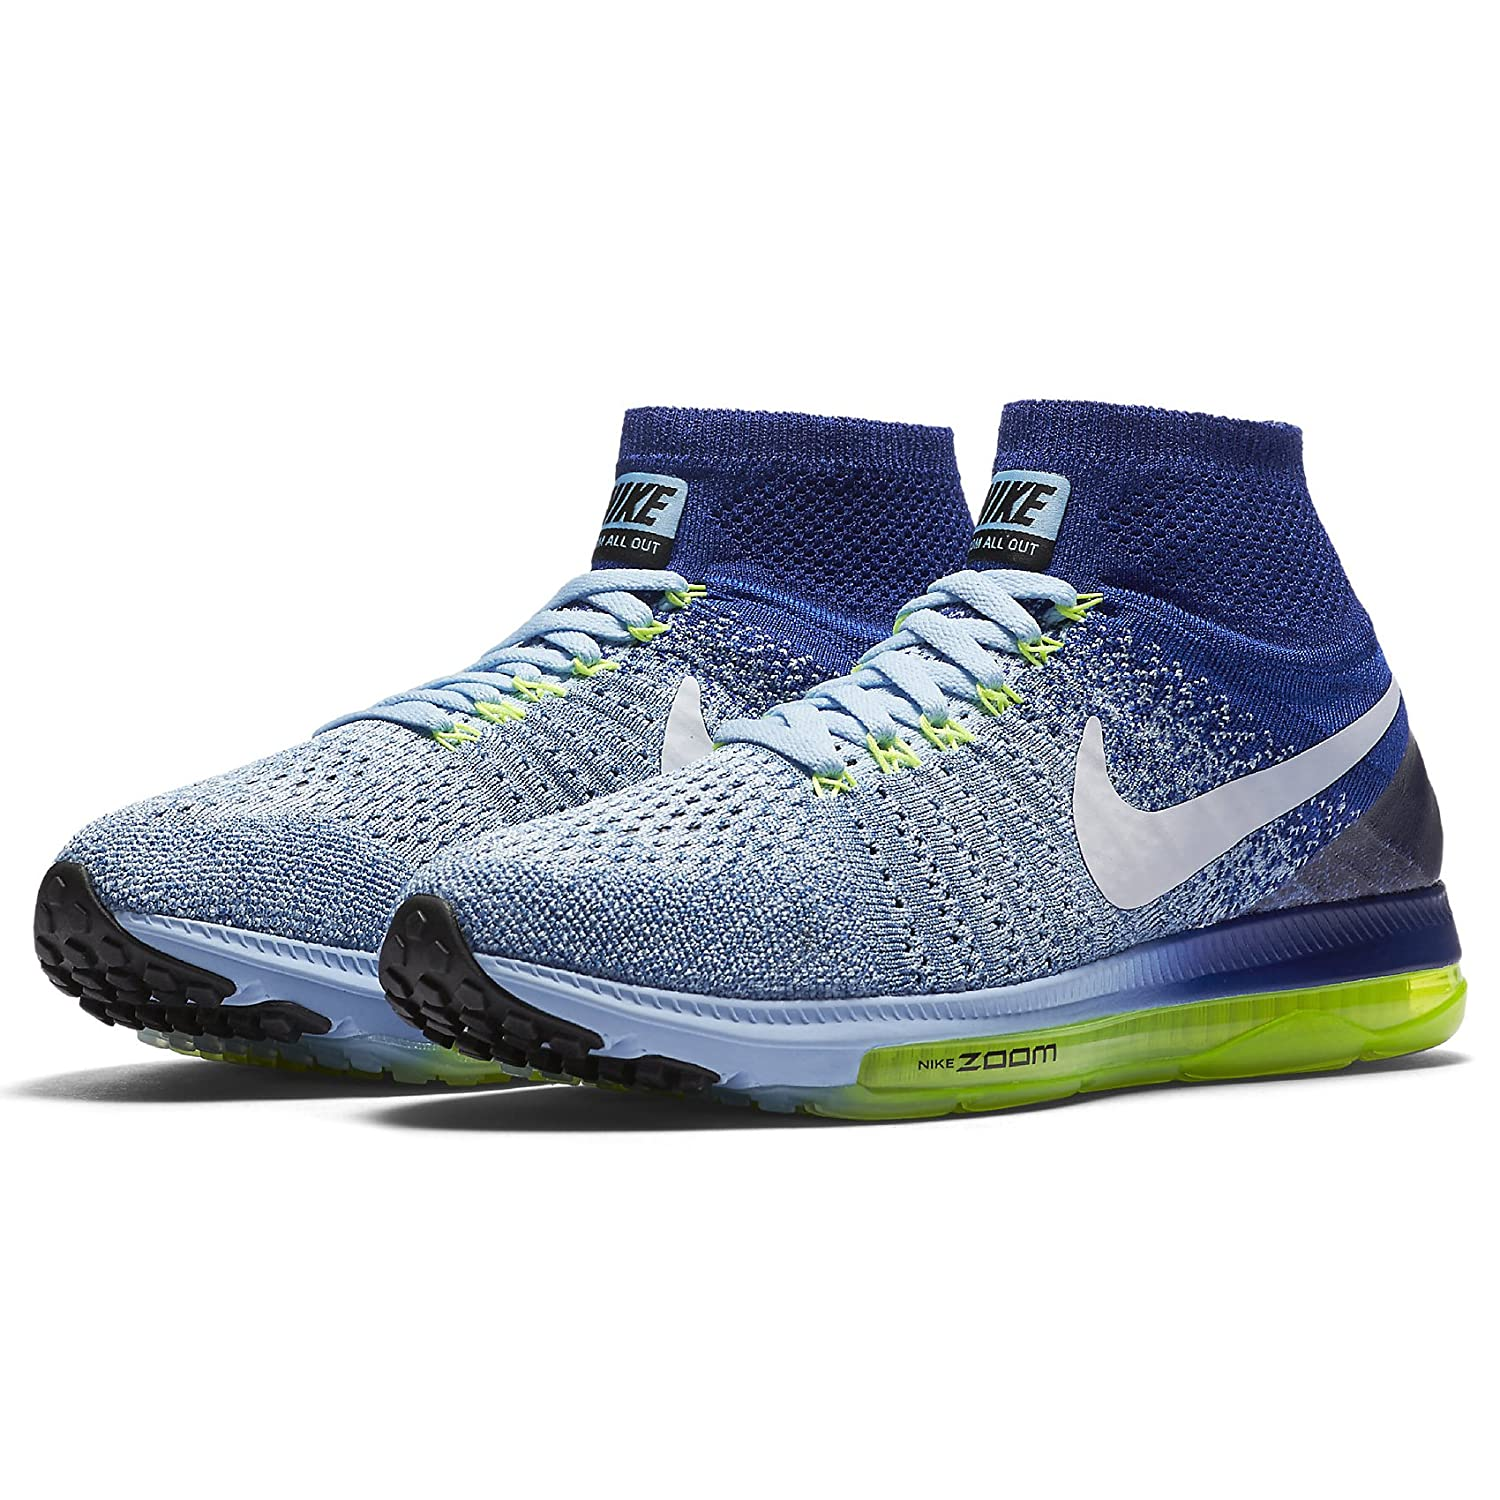 1a1a7daac35ab ... Zapatillas mujer para correr 19925 Nike Zoom All Out Flyknit All para  mujer Bluecap White 400 ...